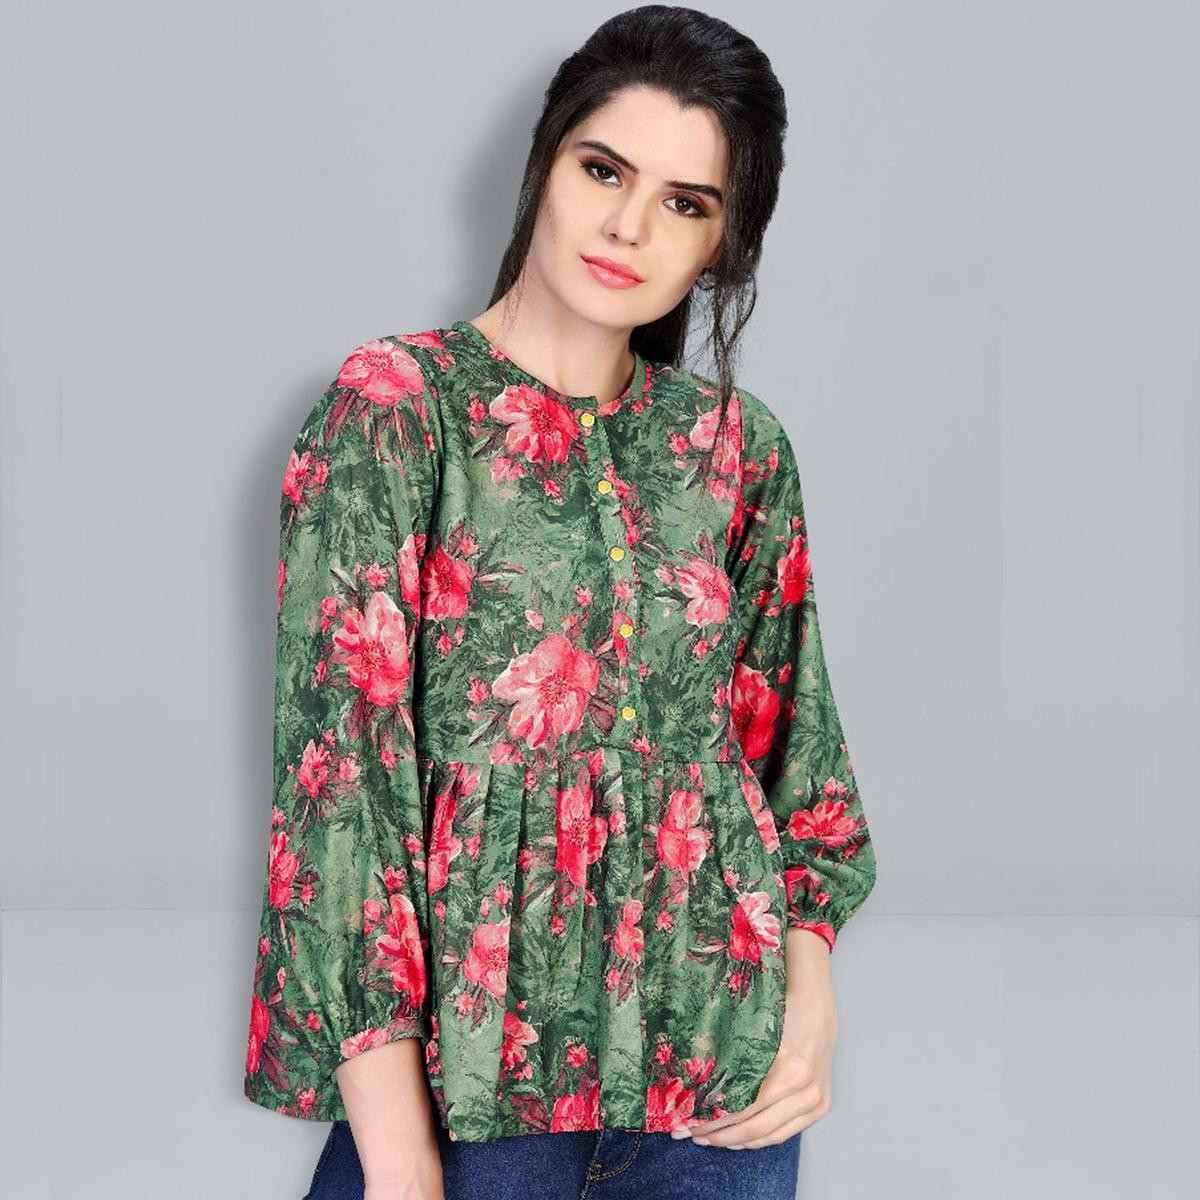 Delightful Green Colored Digital Printed Fancy Cotton Top